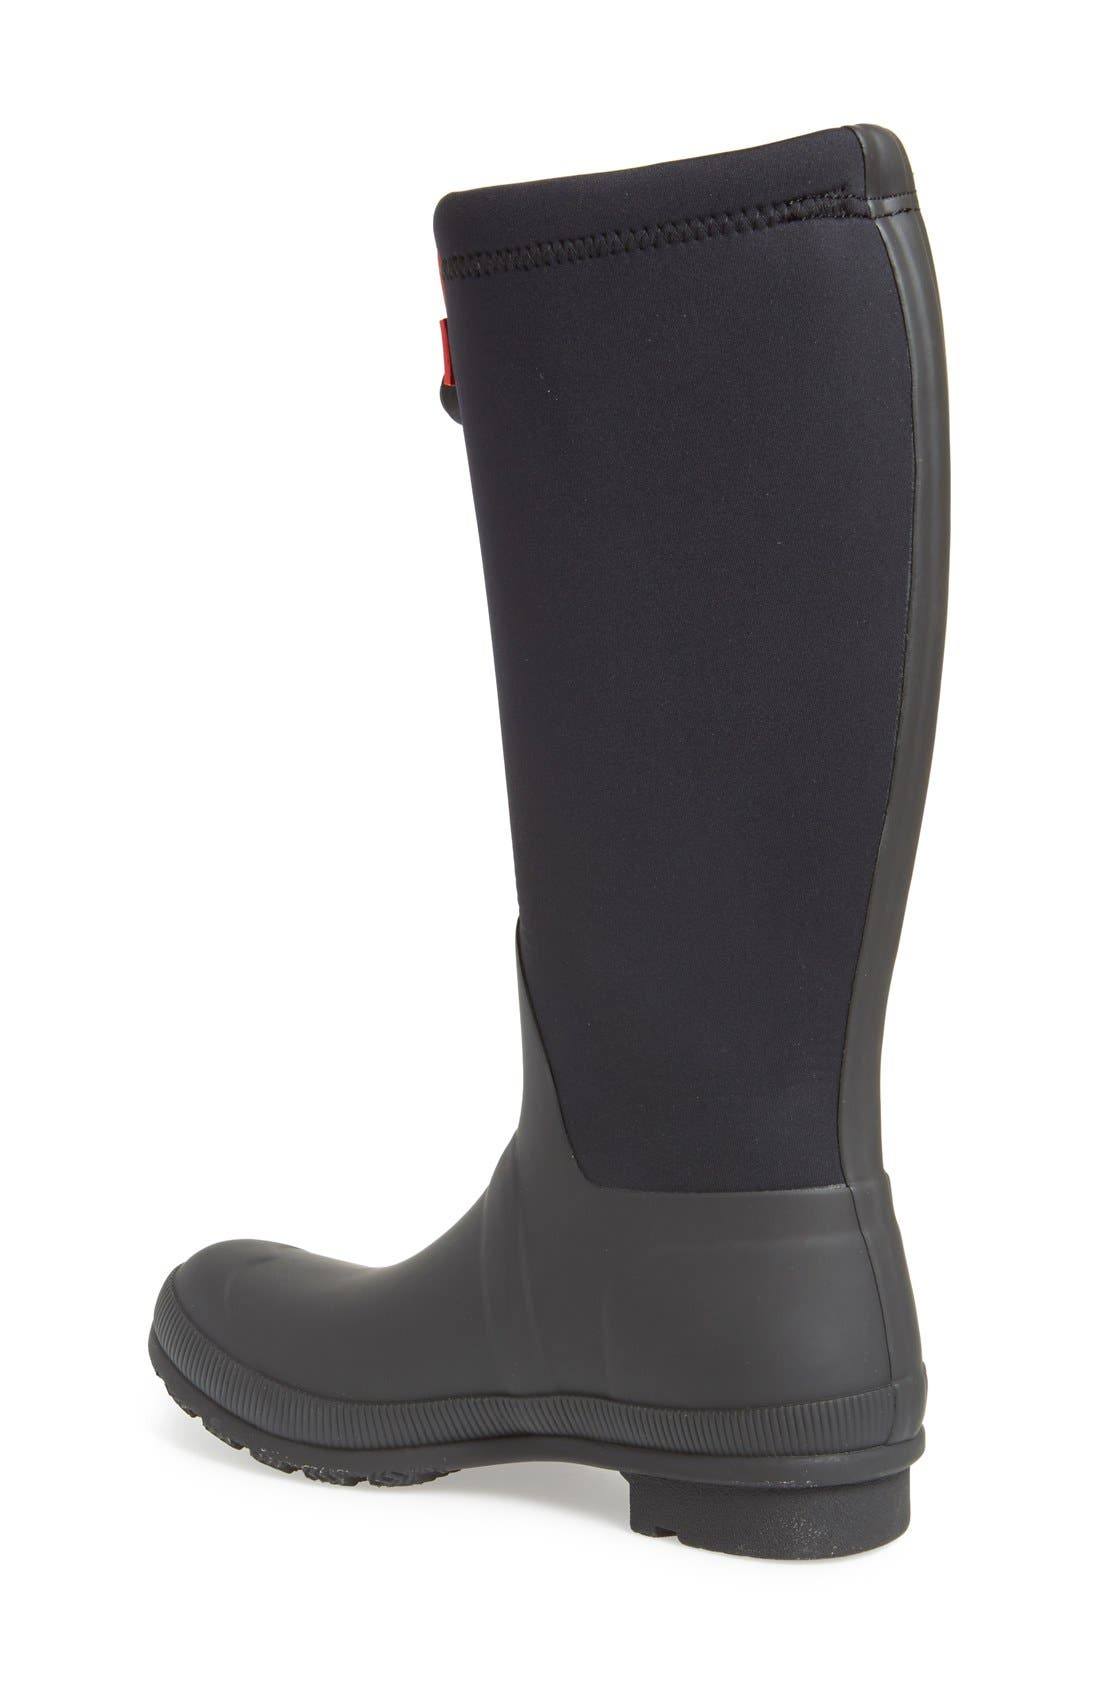 'Original Tour' Neoprene Waterproof Boot,                             Alternate thumbnail 4, color,                             001